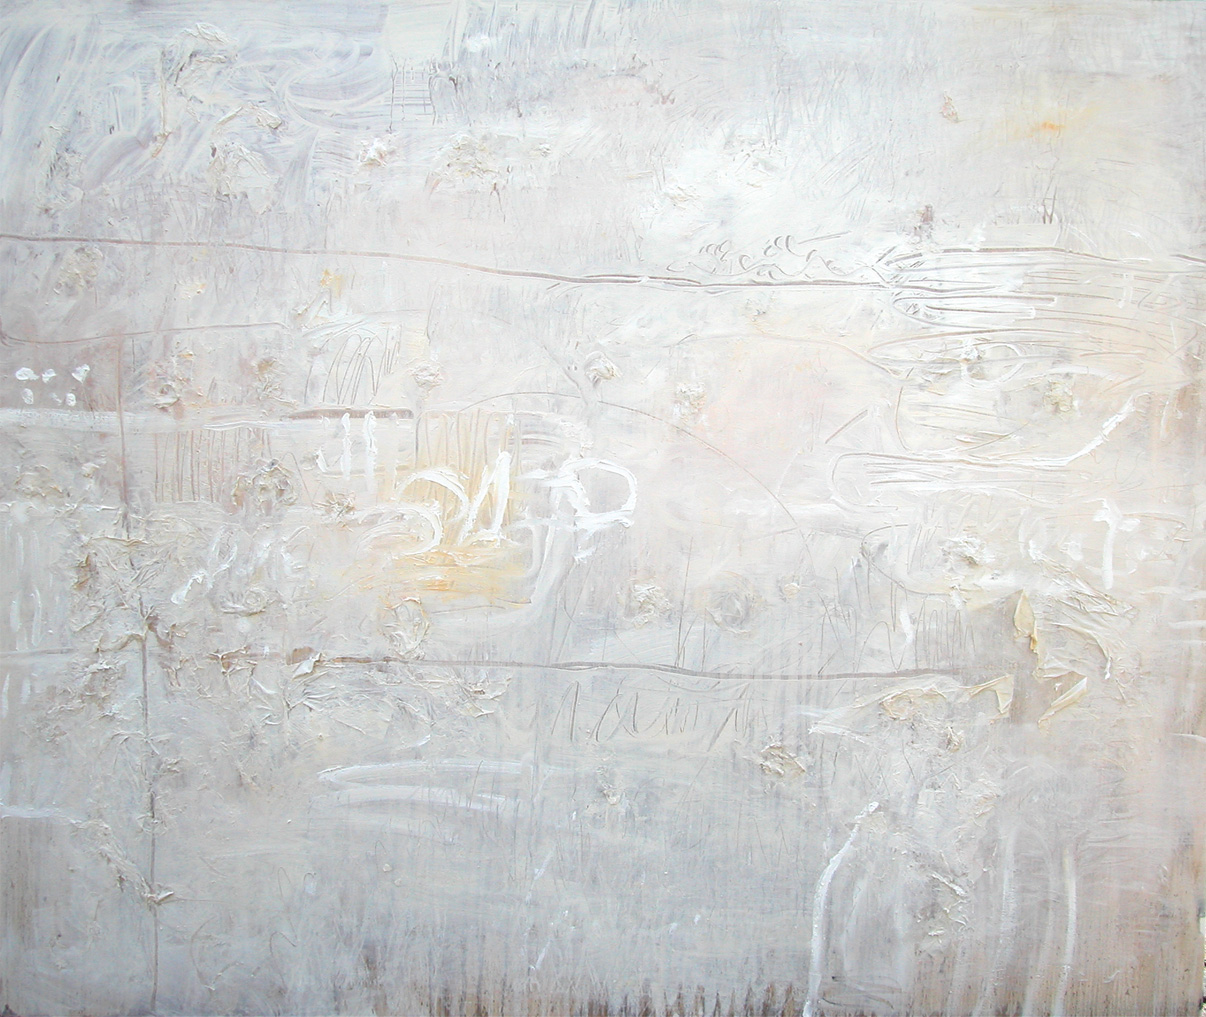 White-on-White 92 x 122cm